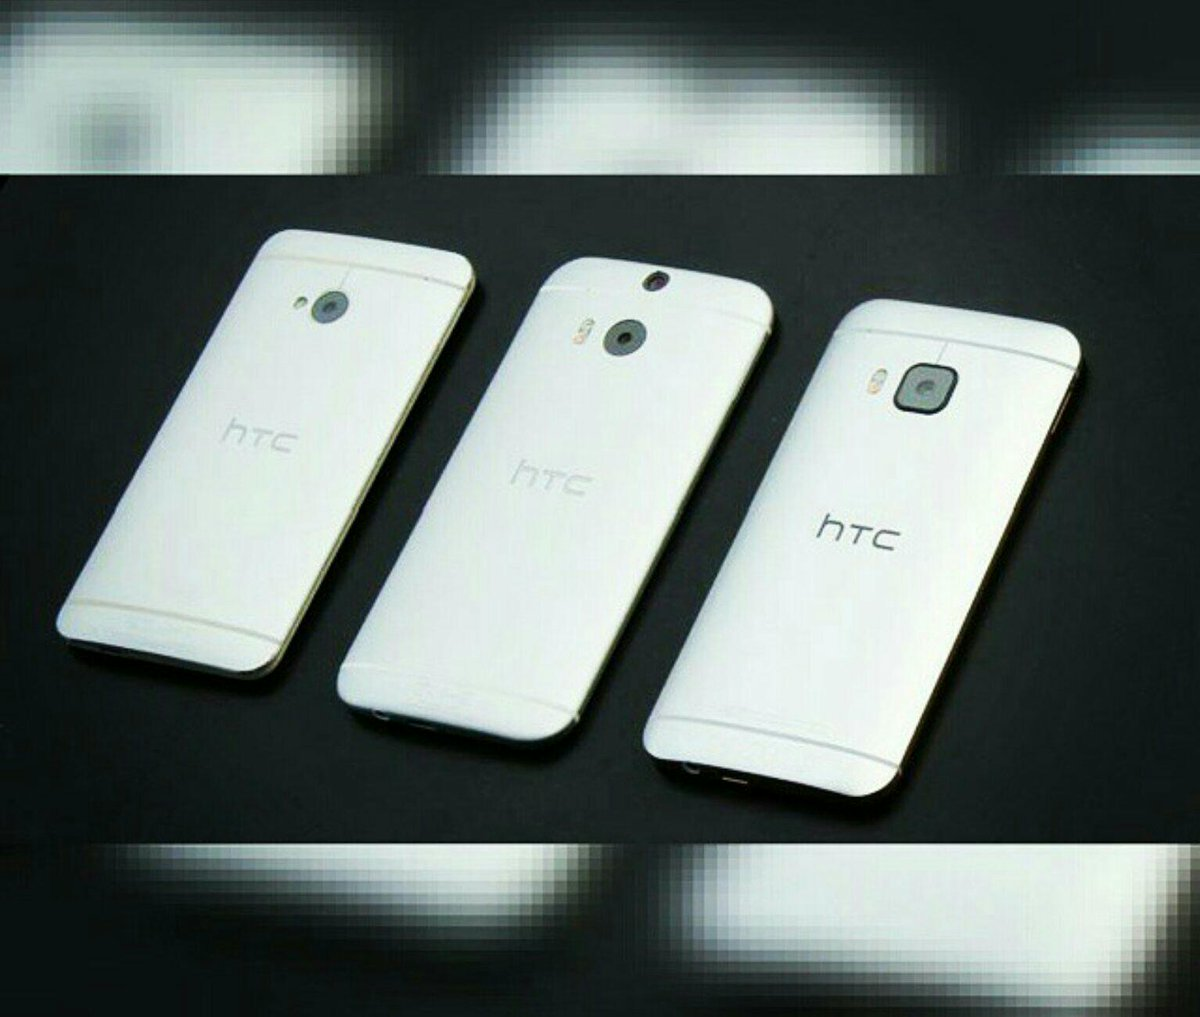 Beauty of Perfection, Evolution in order #HTCOneM7 #HTConeM8 and the all NEW #HTCOneM9 coming soon Get ready @HTCUSA http://t.co/dncnaXXb70